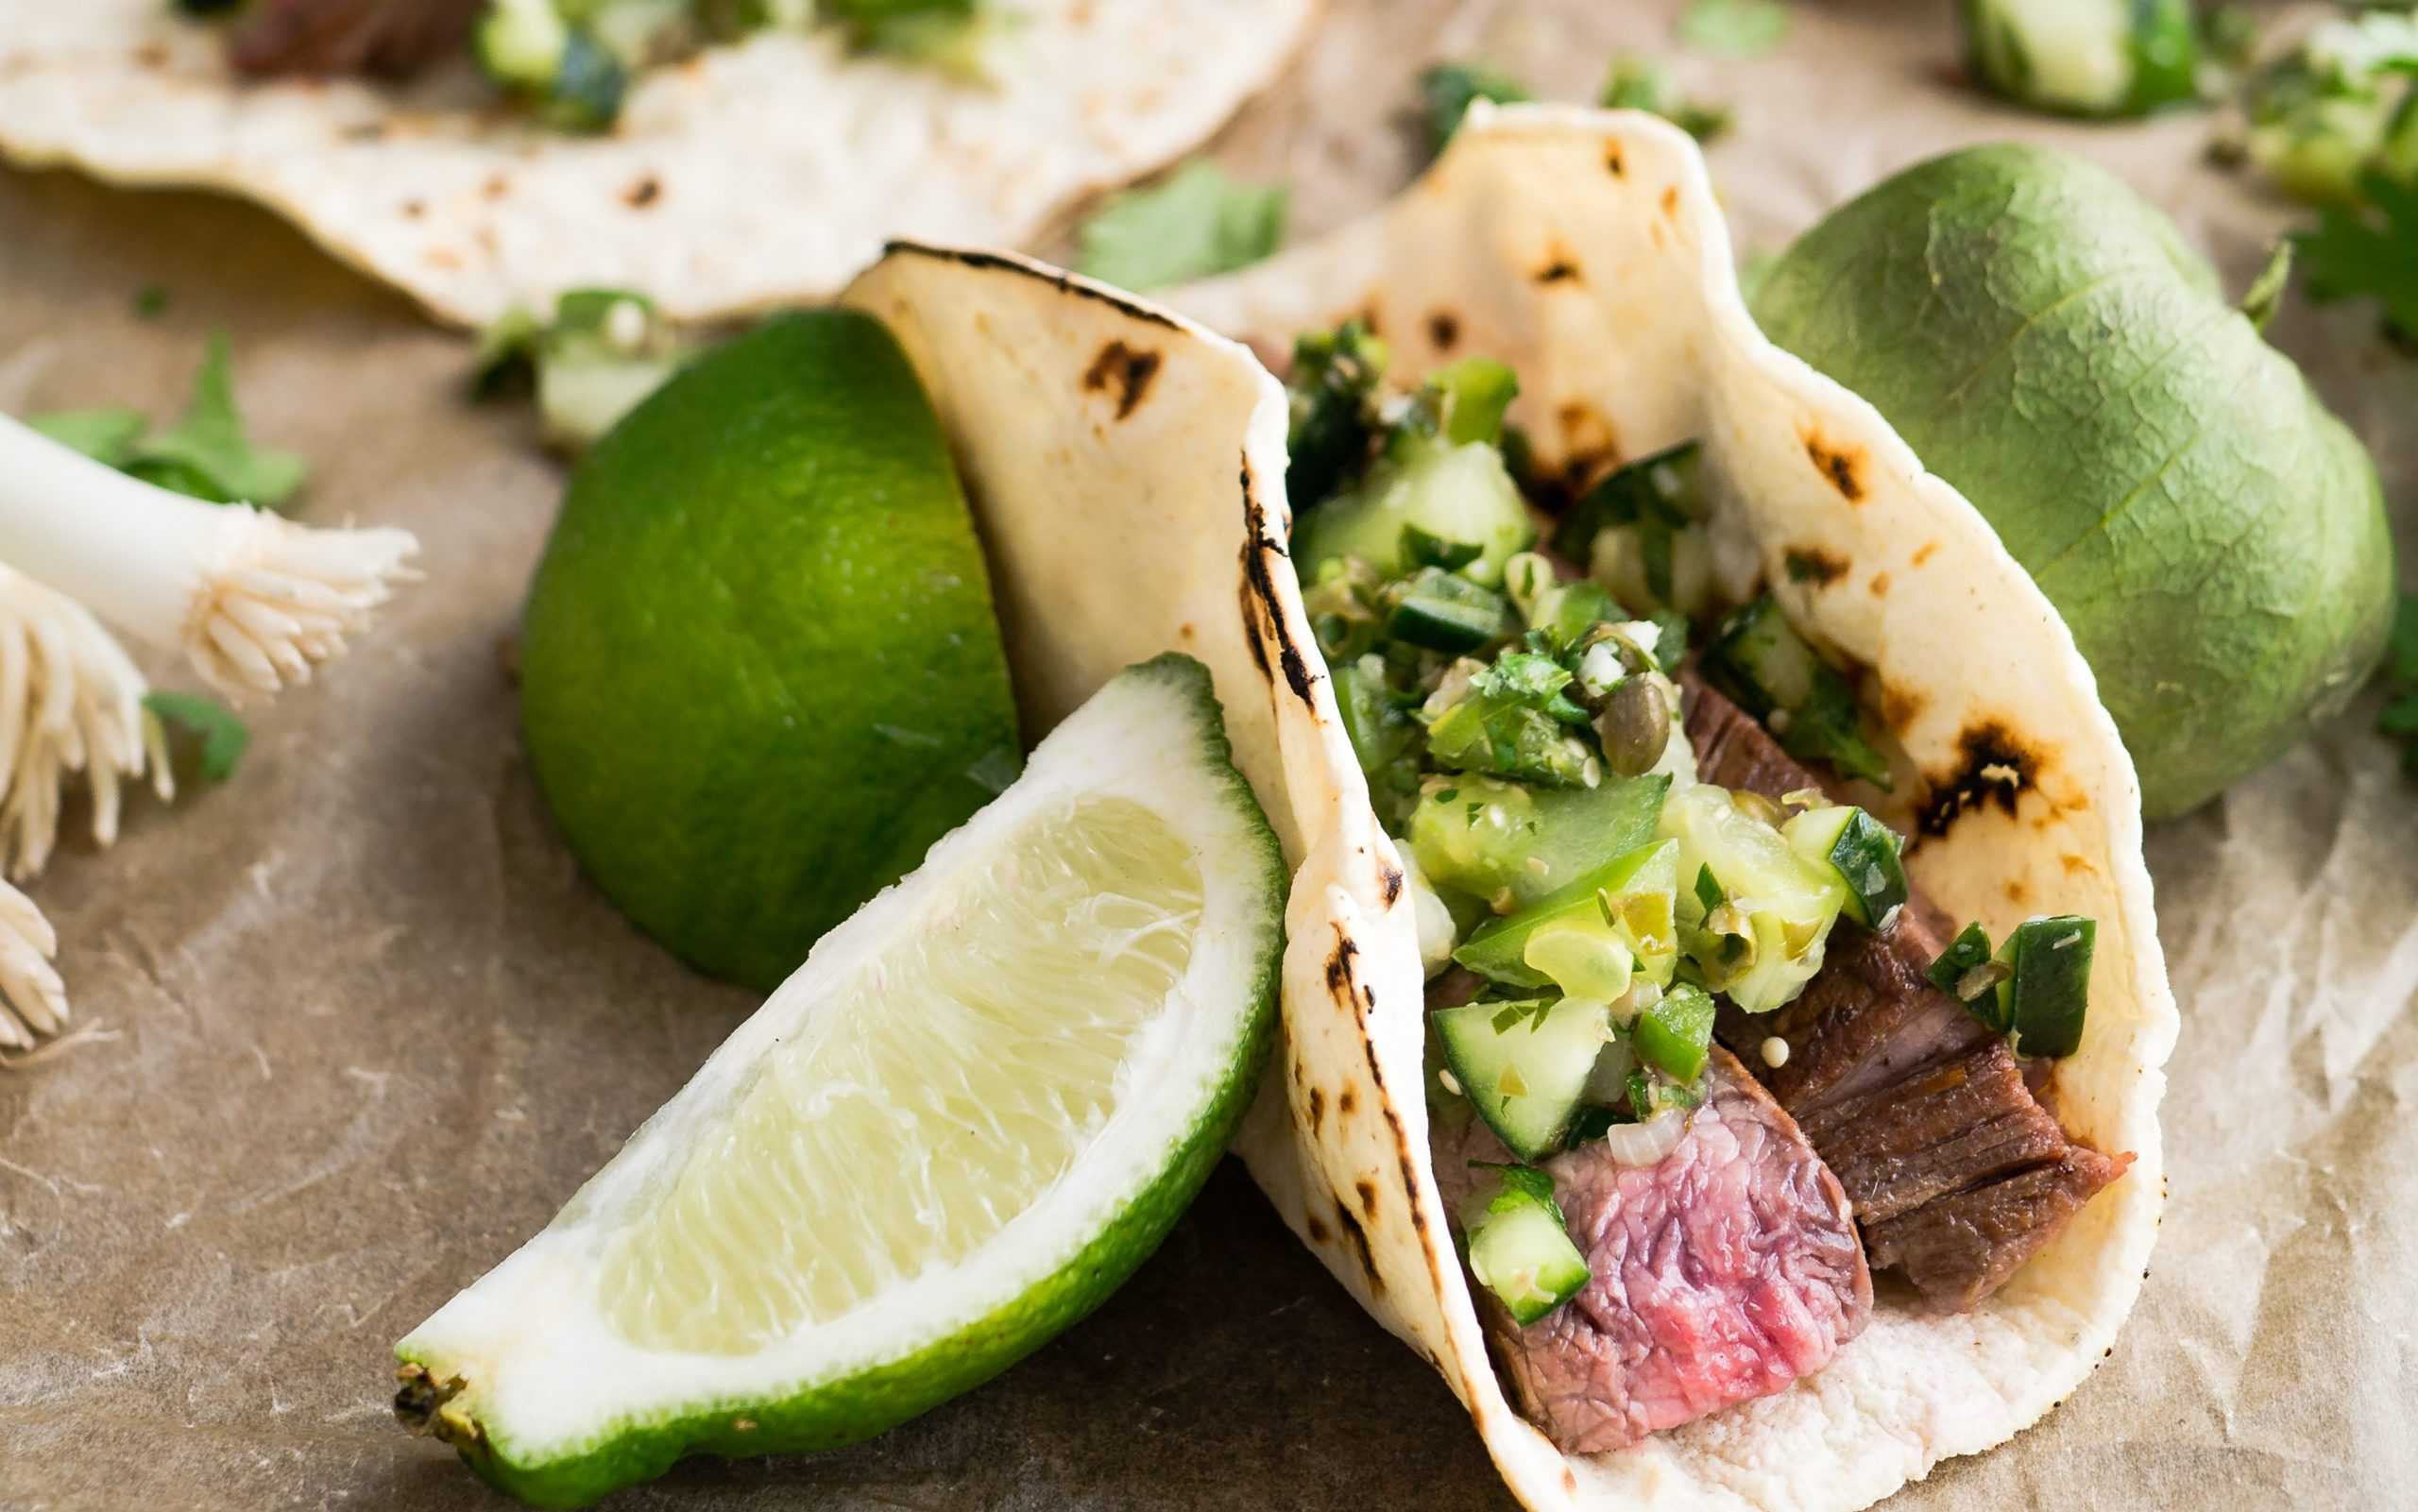 Tacos and limes